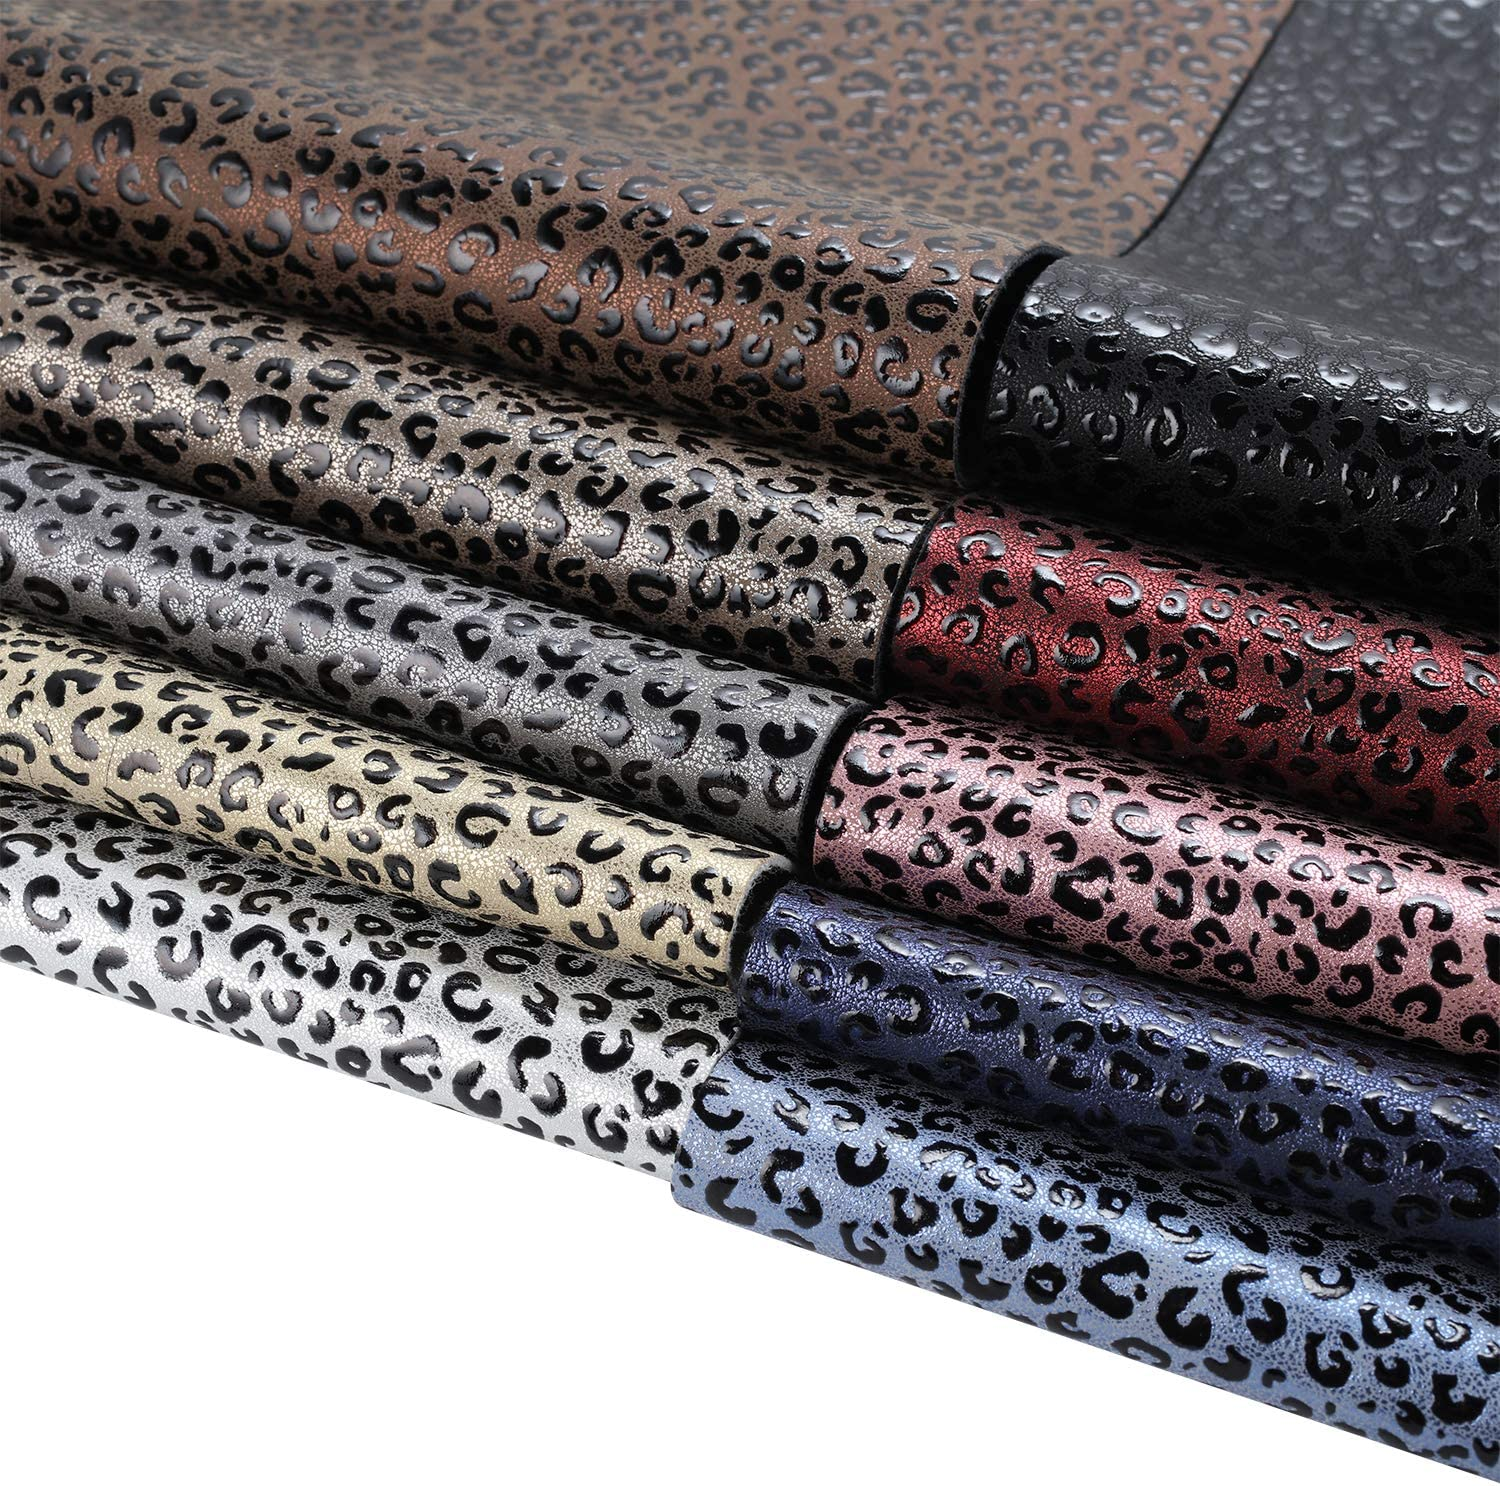 Embossed Synthetic Fabric 1 mm Thickness Assorted Color SHUANGART 10 Pieces Leopard Printed Fauxs Leather Sheets【8 X 12//21 X 30 cm】for Bows Earrings Purse Handbags Crafts Jewelry Making